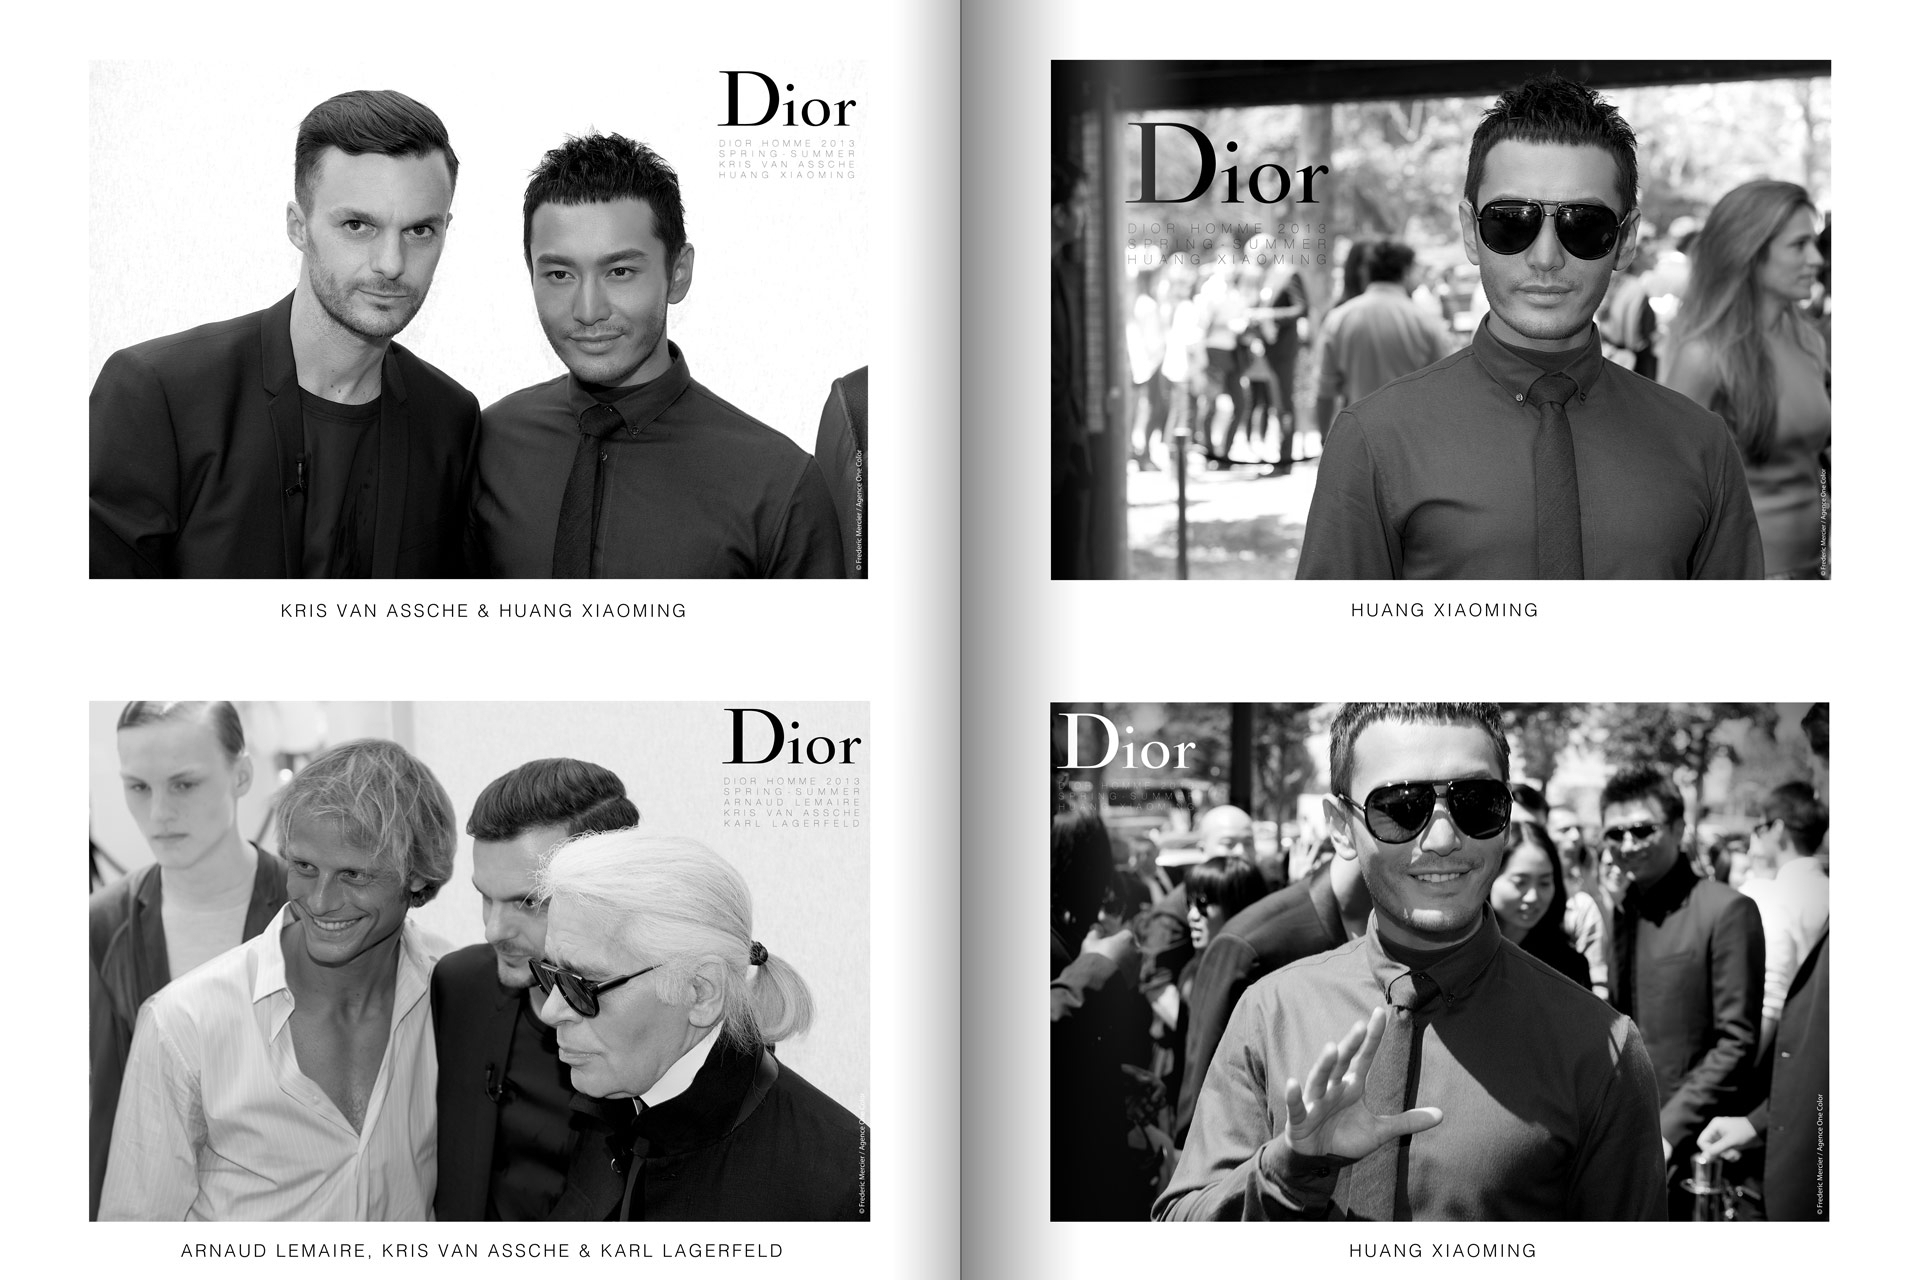 frederic mercier fashion photographer one color portraits people kris van assche karl lagerfeld arnaud lemaire and huang xiaoming for dior